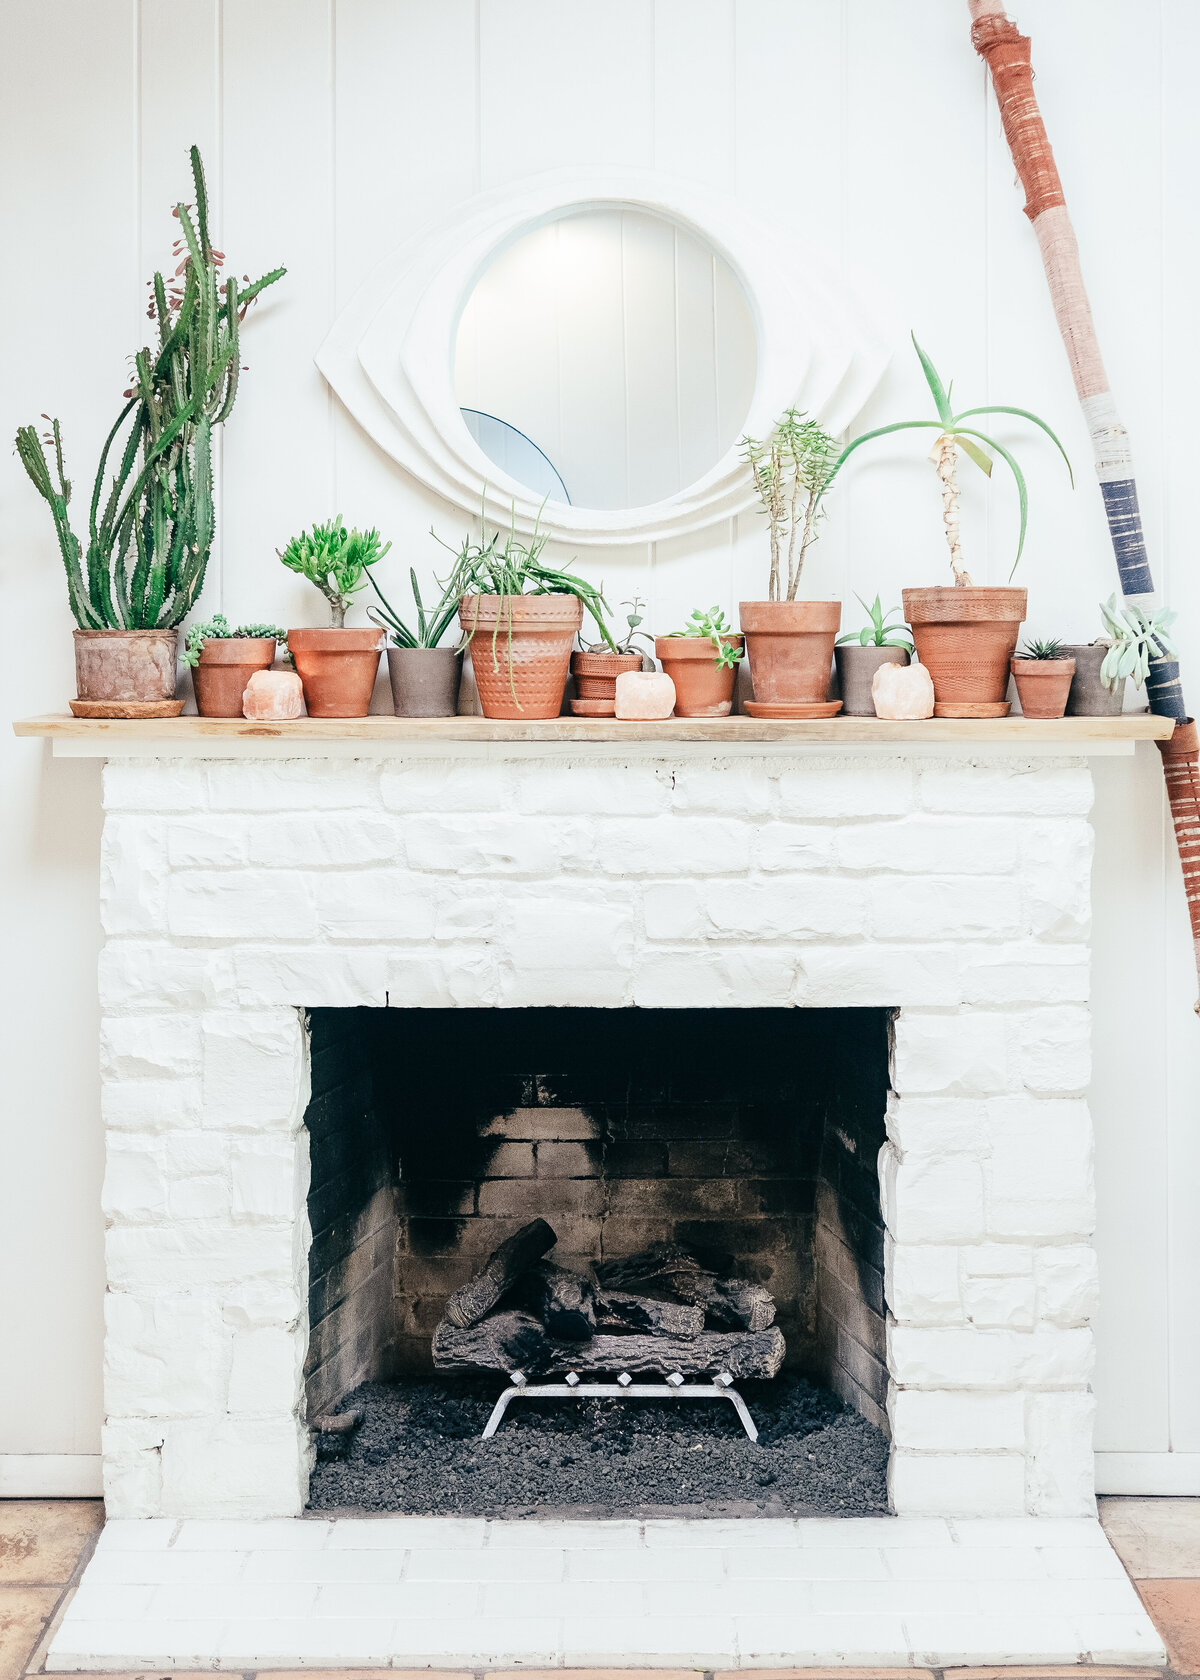 A white brick fireplace has a wooden mantlepiece covered in terracotta pots with plants.